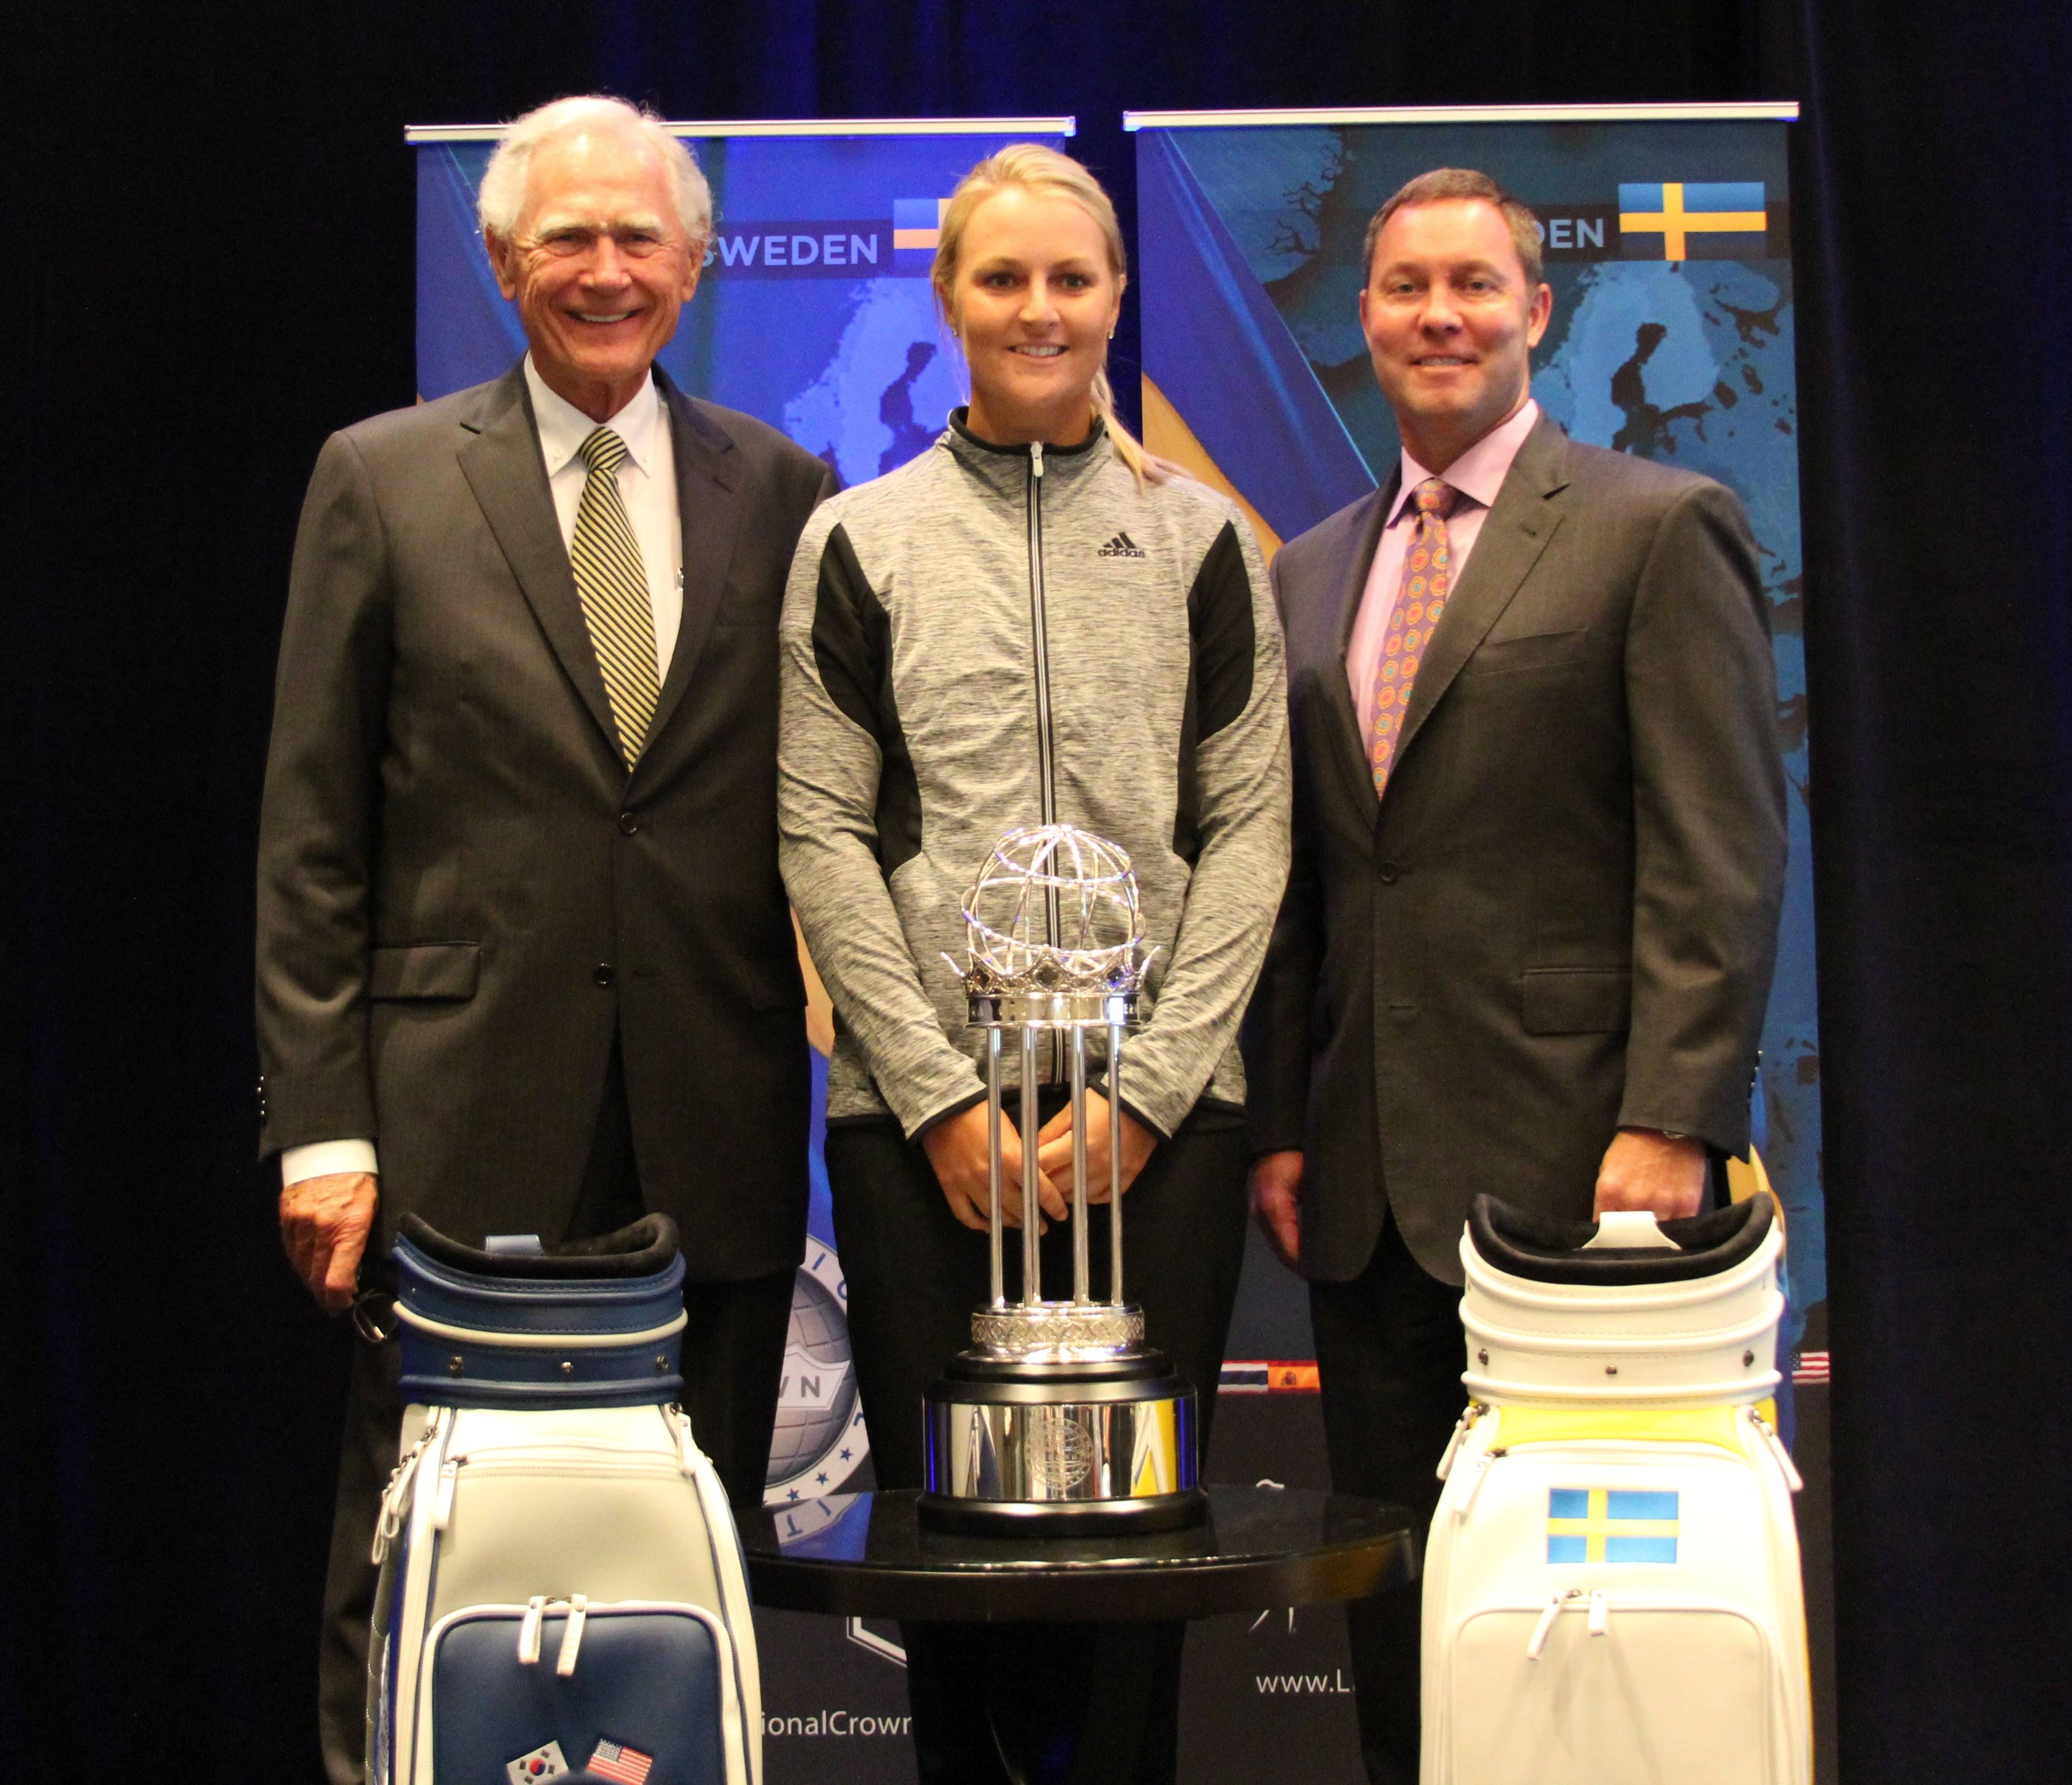 Rich Harvest owner Jerry Rich, LPGA star Anna Nordquist from Sweden and LPGA commissioner Mike Whan at Friday's Launch Party for the International Crown event that will be coming to Rich Harvest Farms in 2016.